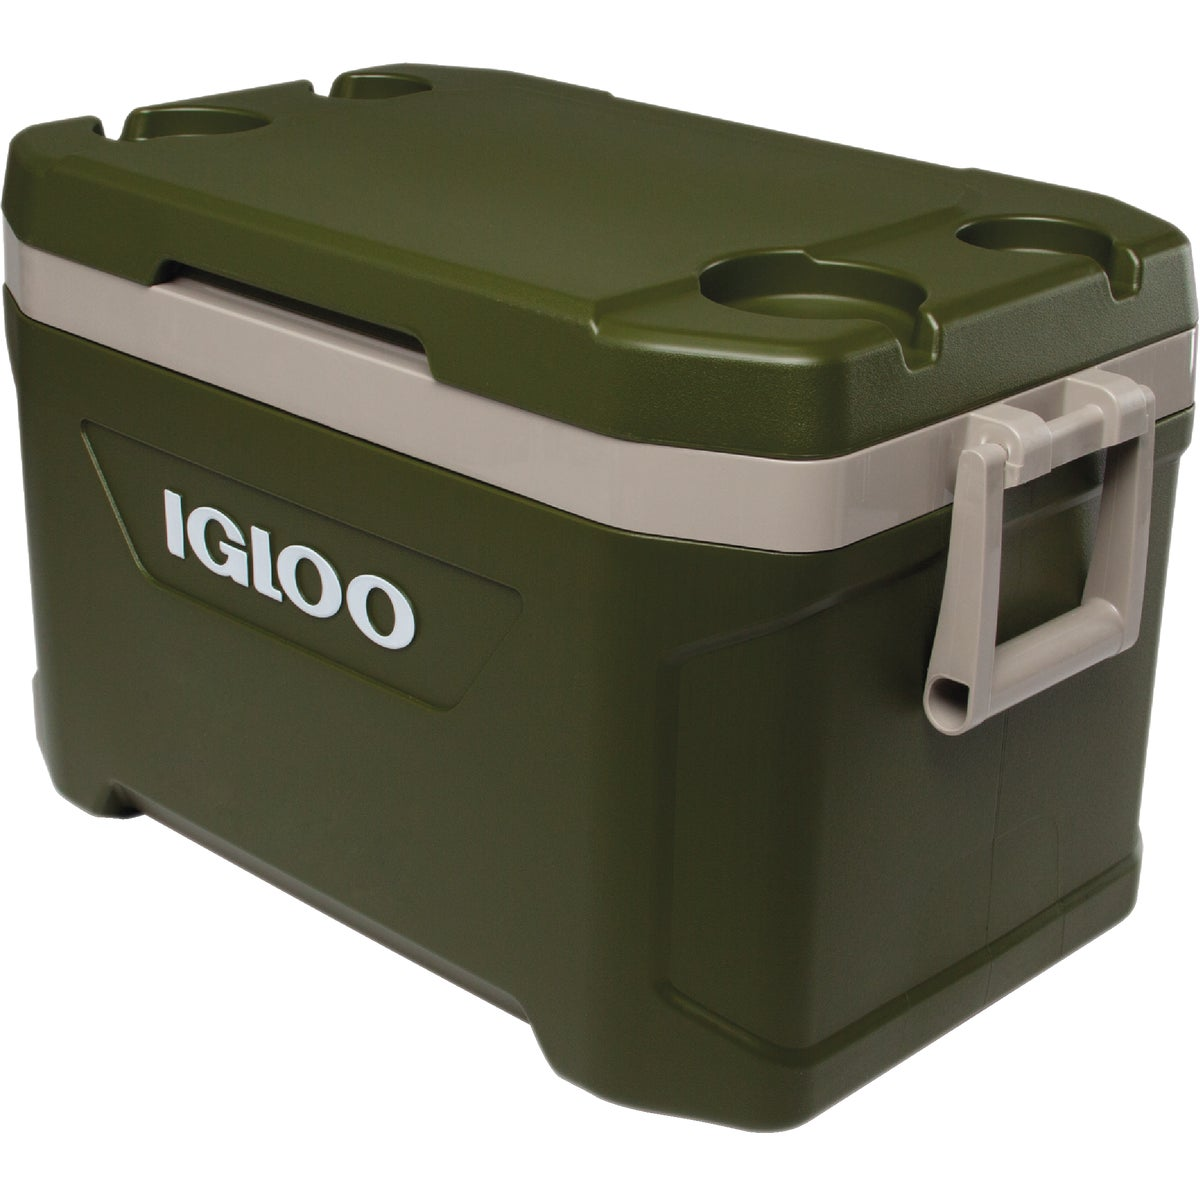 SPORTSMAN 52QT COOLER - 44364 by Igloo Corp